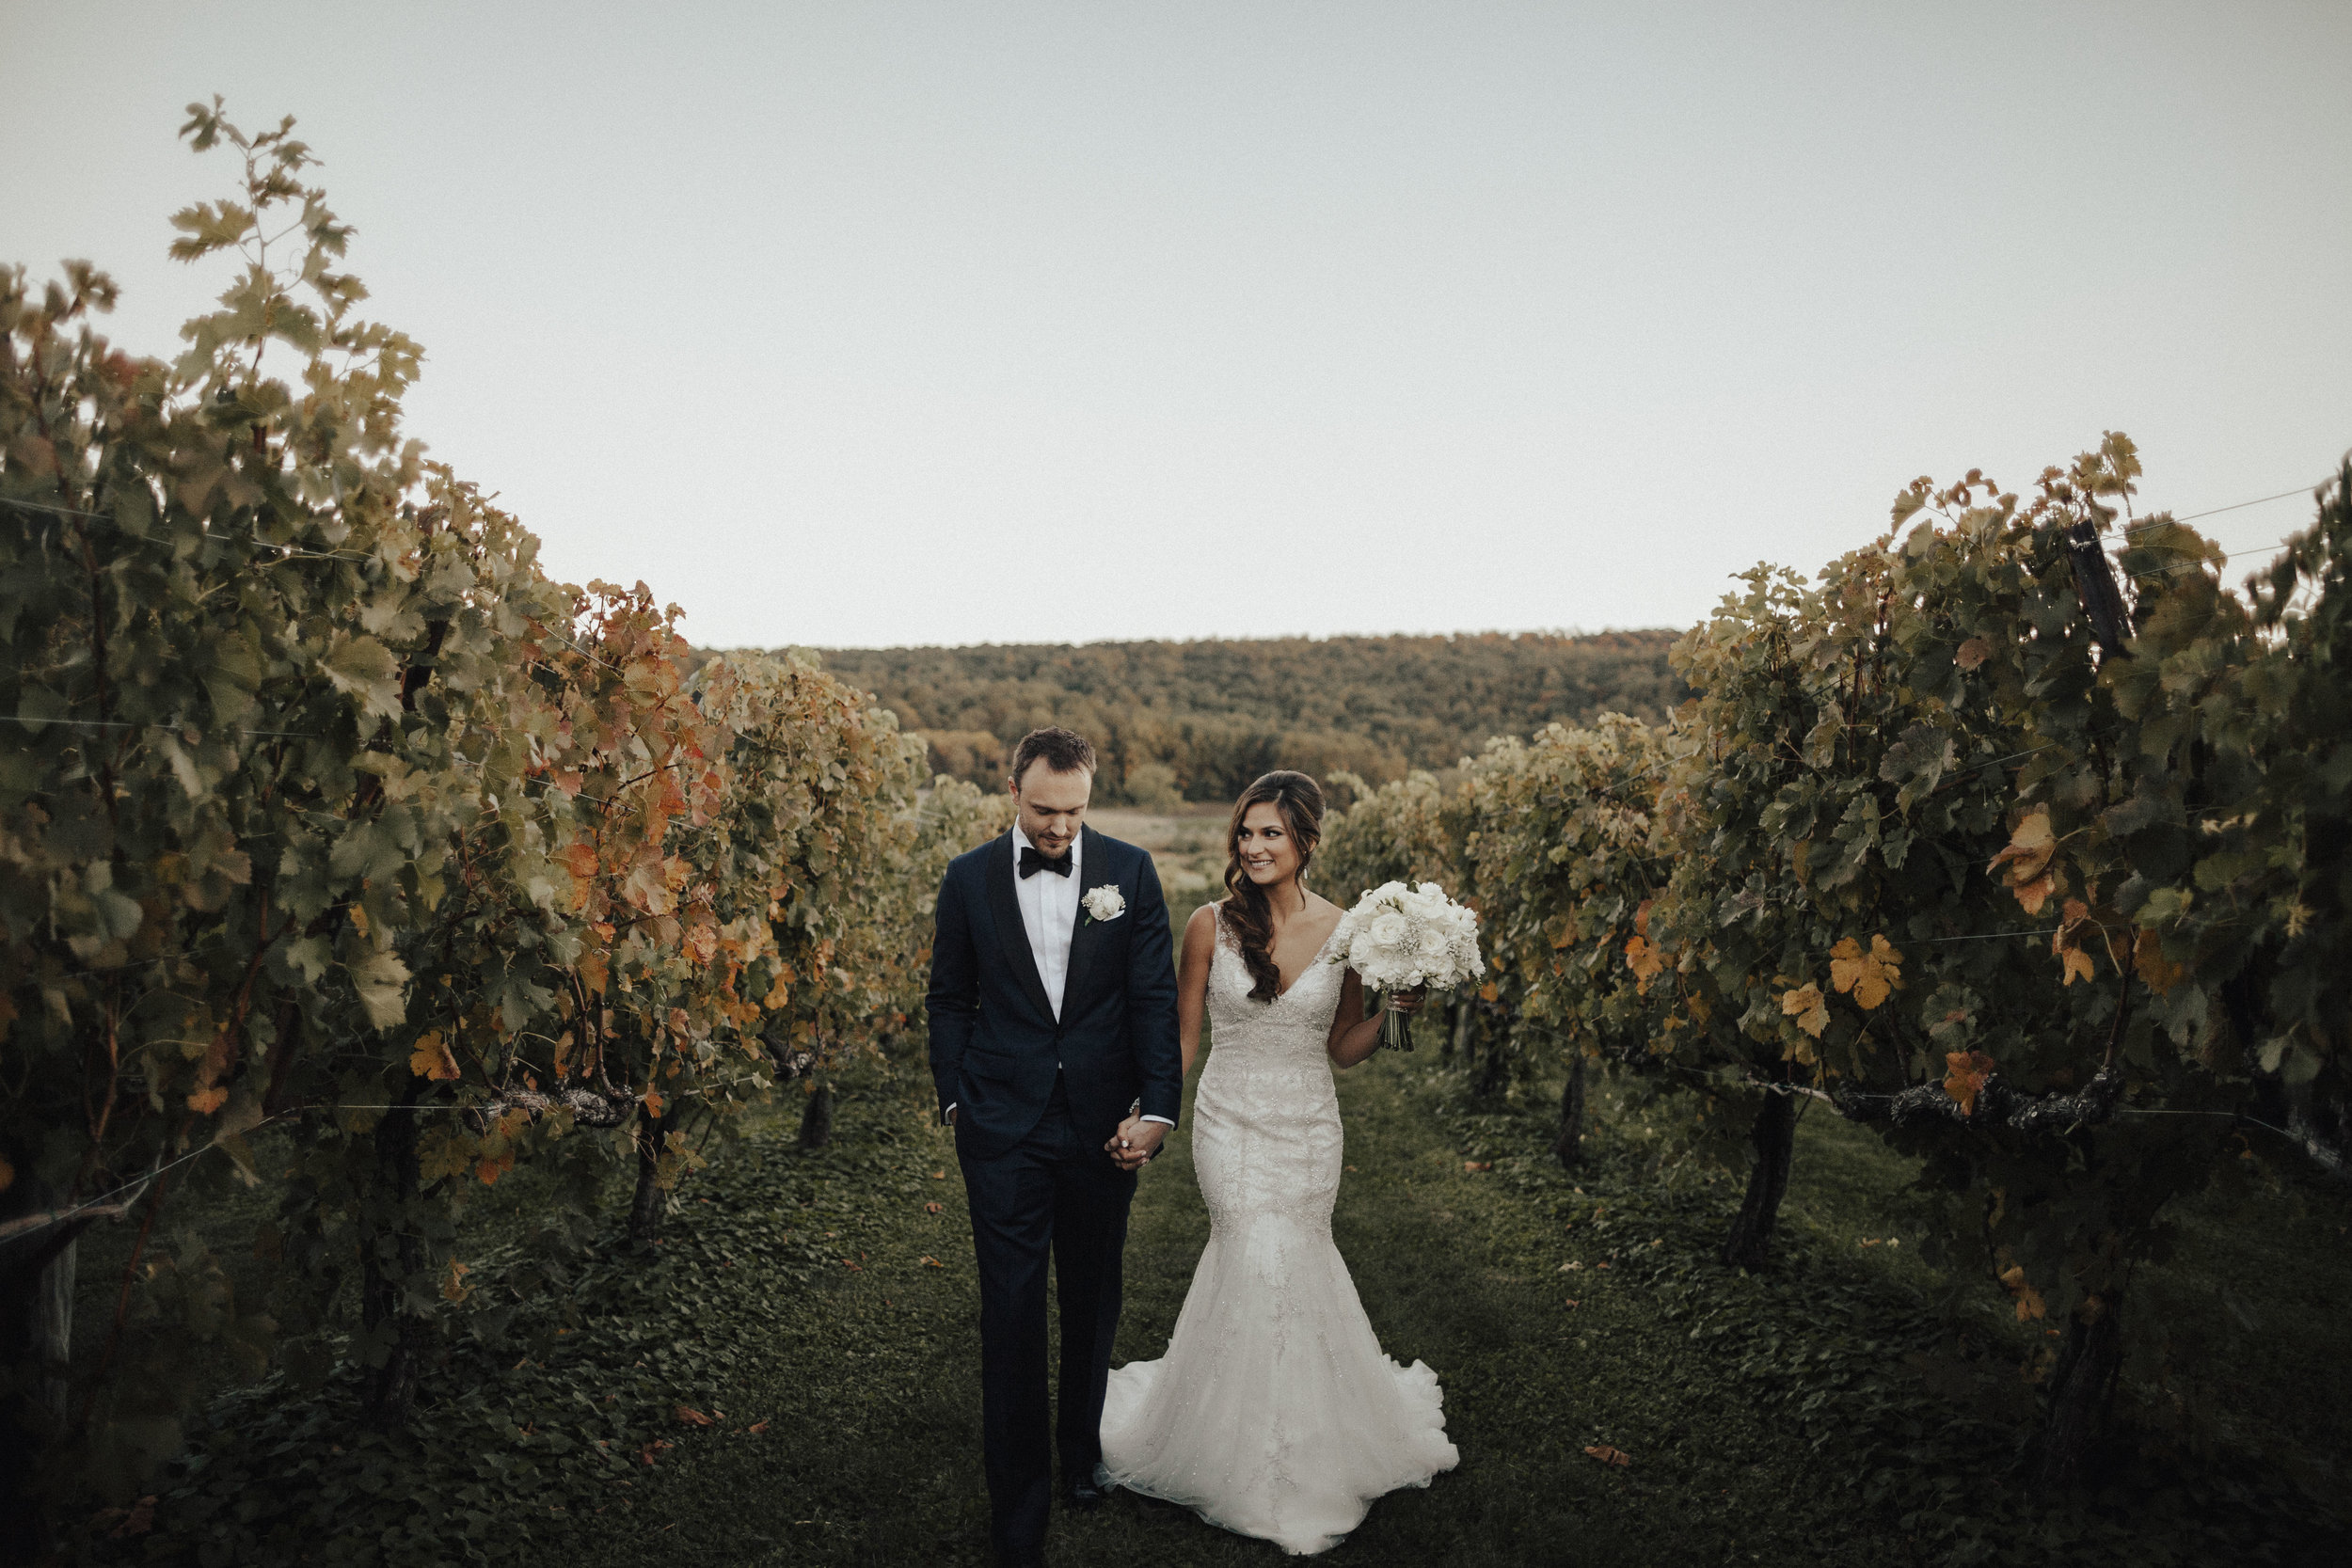 Breaux Vineyards  - Get married among the vines in the Shenandoah Valley and dance the night away in their beautiful reception hall! This is a hidden gem in Purcellville, VA.